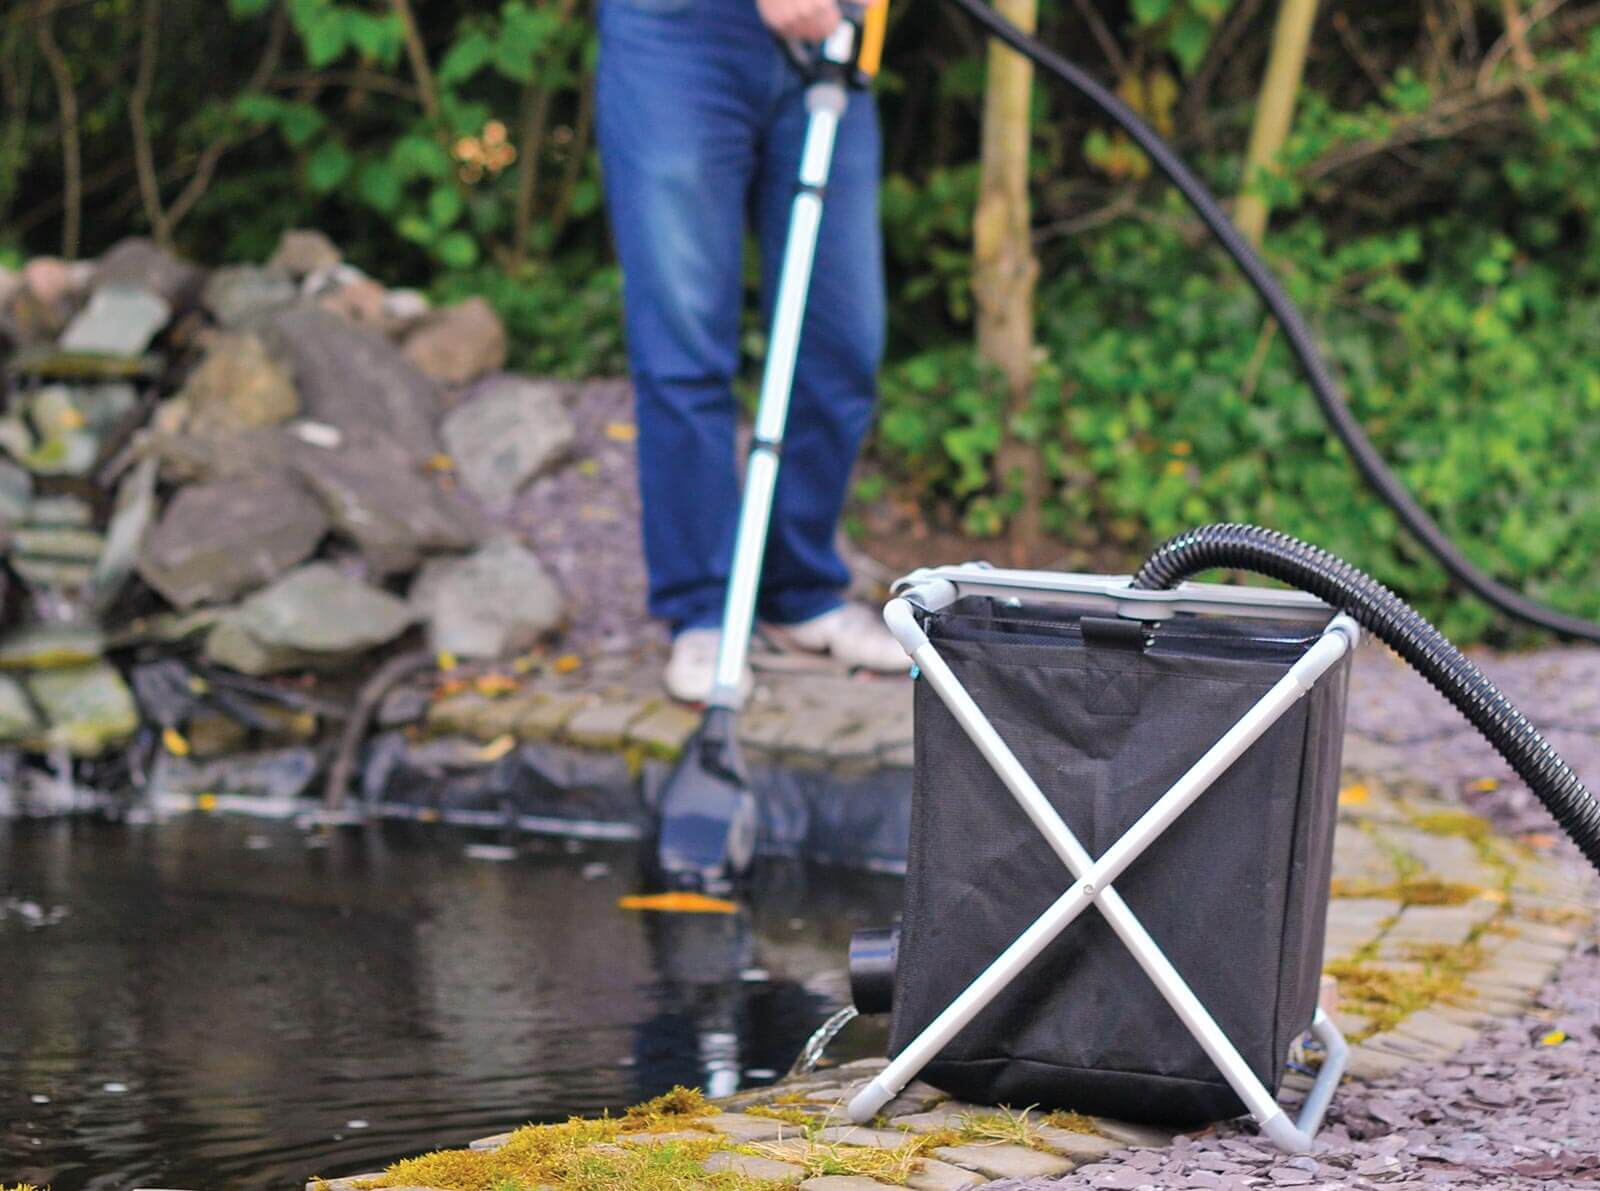 Best Pond Vacuum Cleaner For Home Review In July 2019